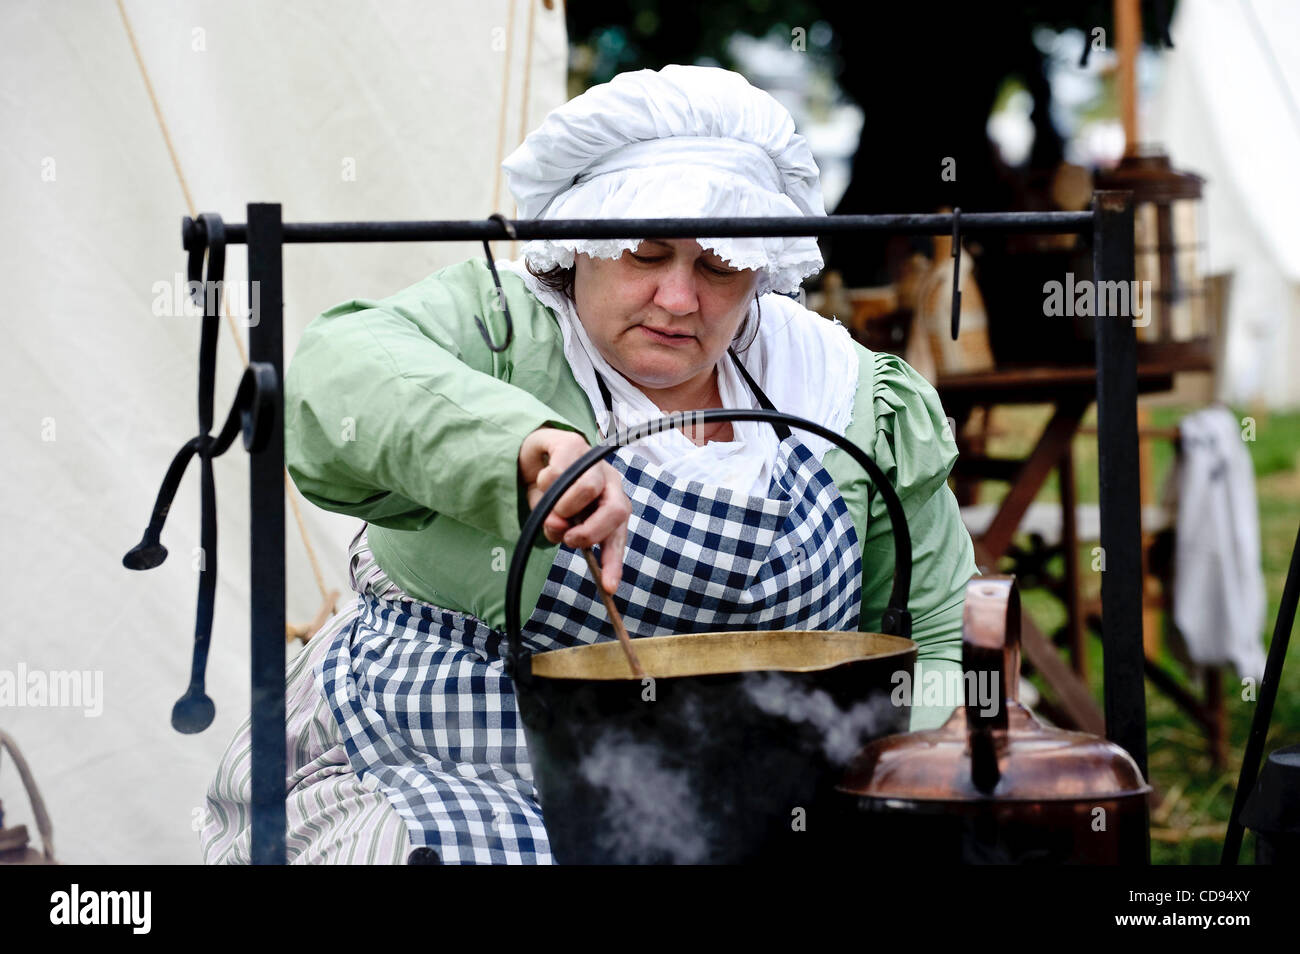 June 19, 2010 - Brussels, BXL, Belgium - Woman dressed up  during re-enactment of  the 1815 Battle of Waterloo between - Stock Image